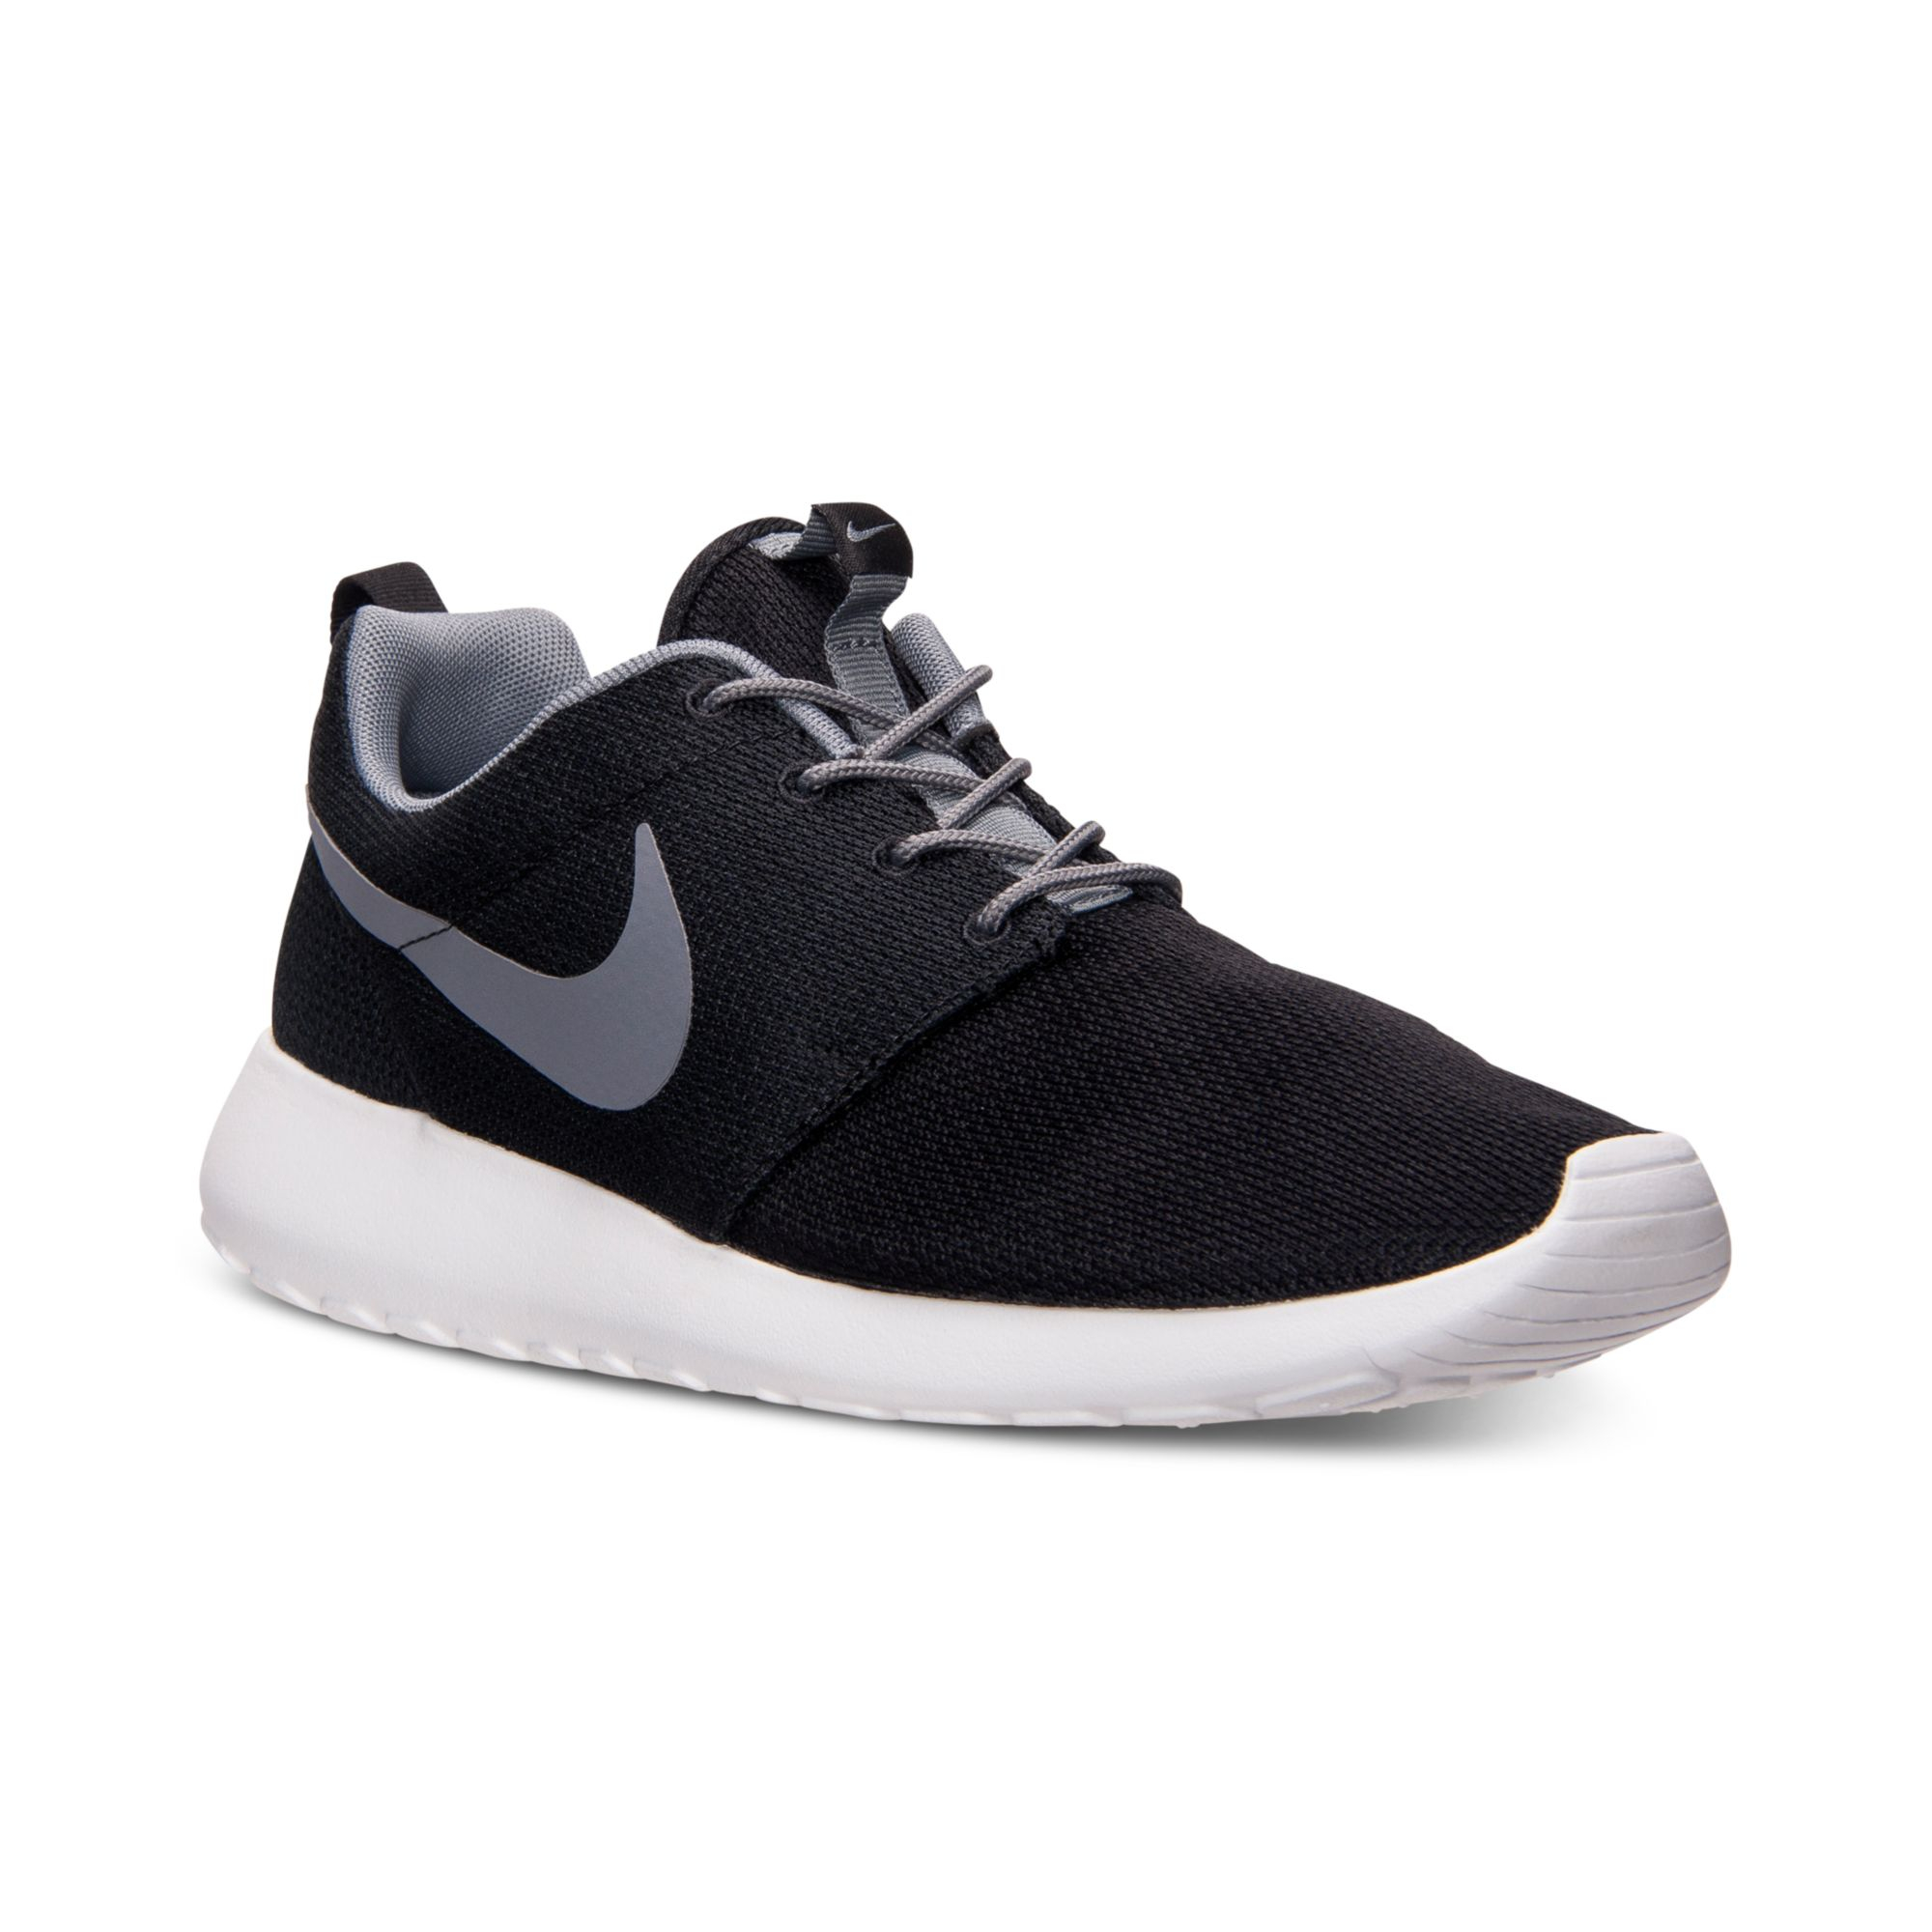 nike men s roshe run designed running shoes - Santillana ...